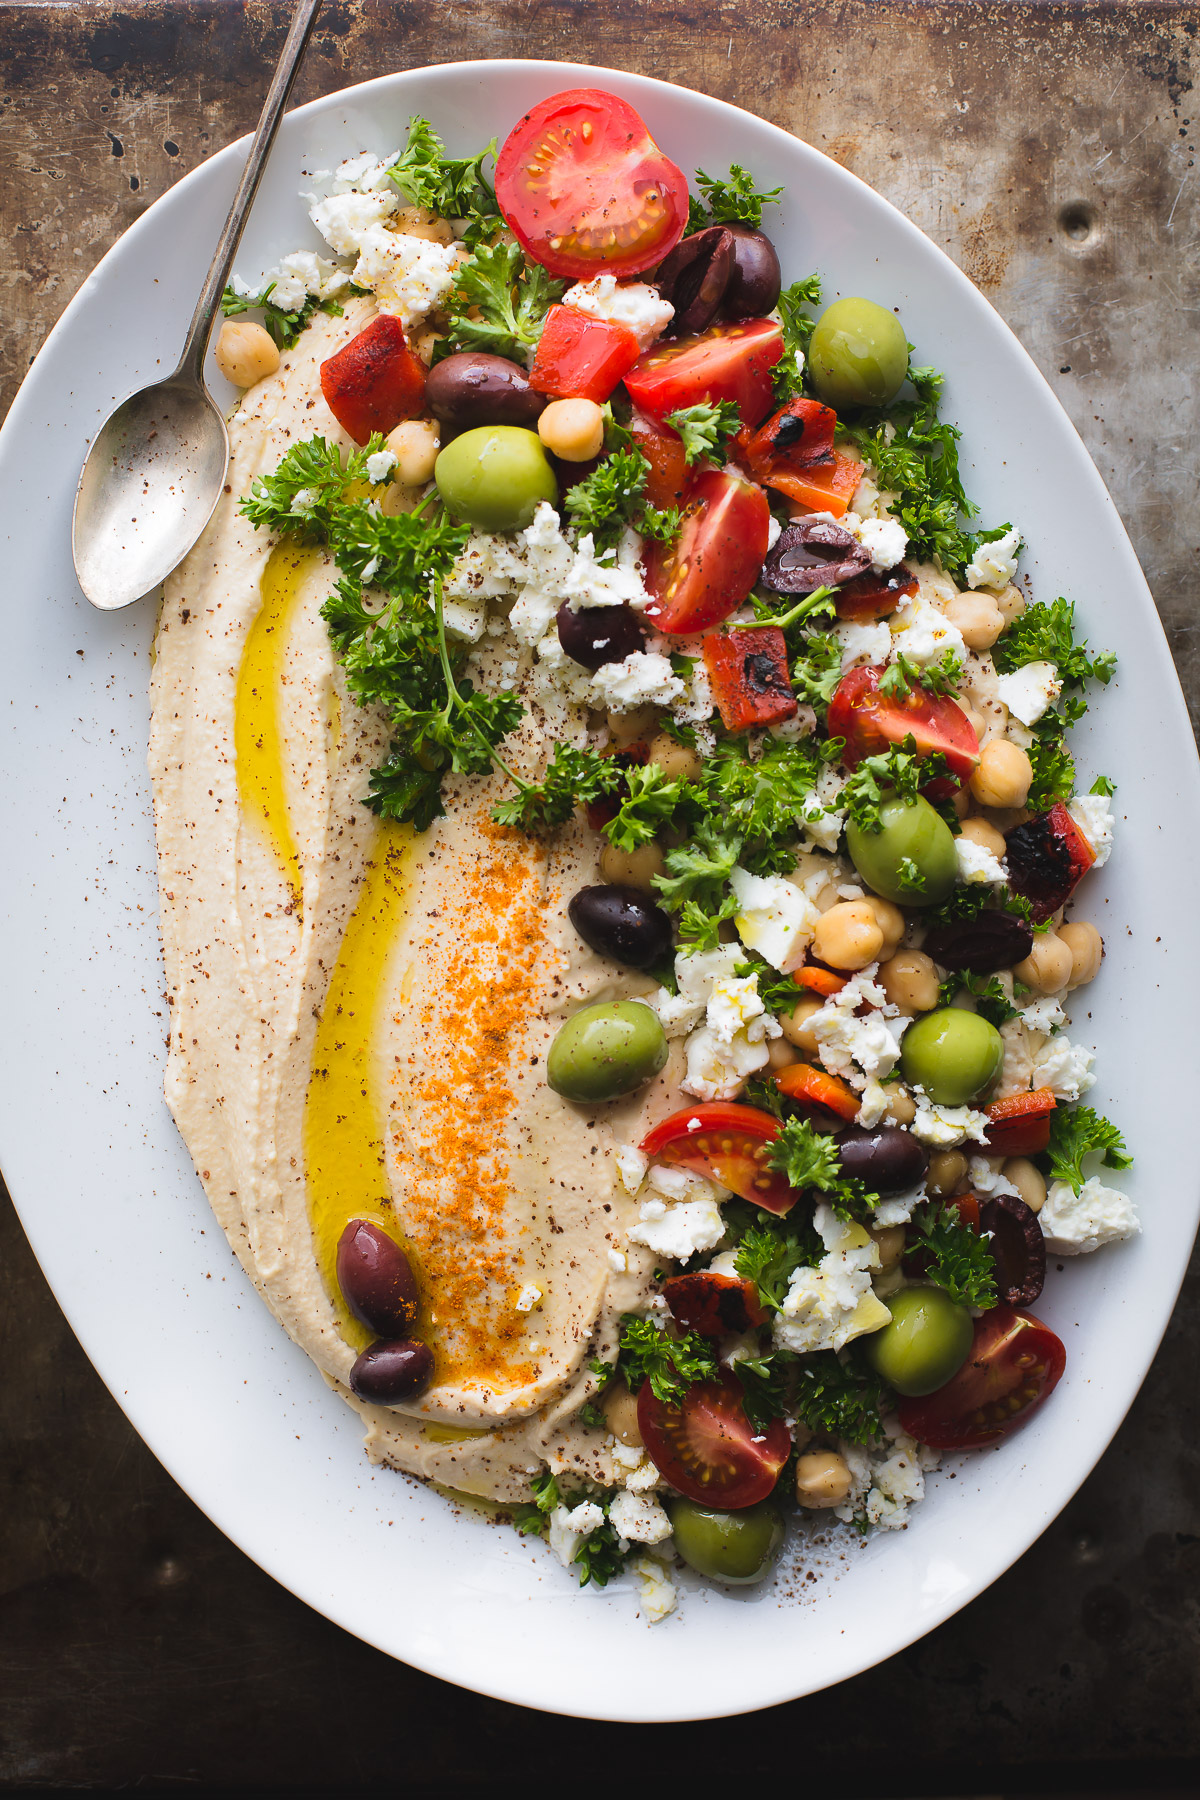 This Loaded Hummus is a great crowd-pleasing appetizer, but the hummus recipe itself is a keeper! Make this regularly and keep a container in the fridge! It's great for snacking, lunches and dinners. Naturally vegan and gluten-free. From @tasteLUVnourish